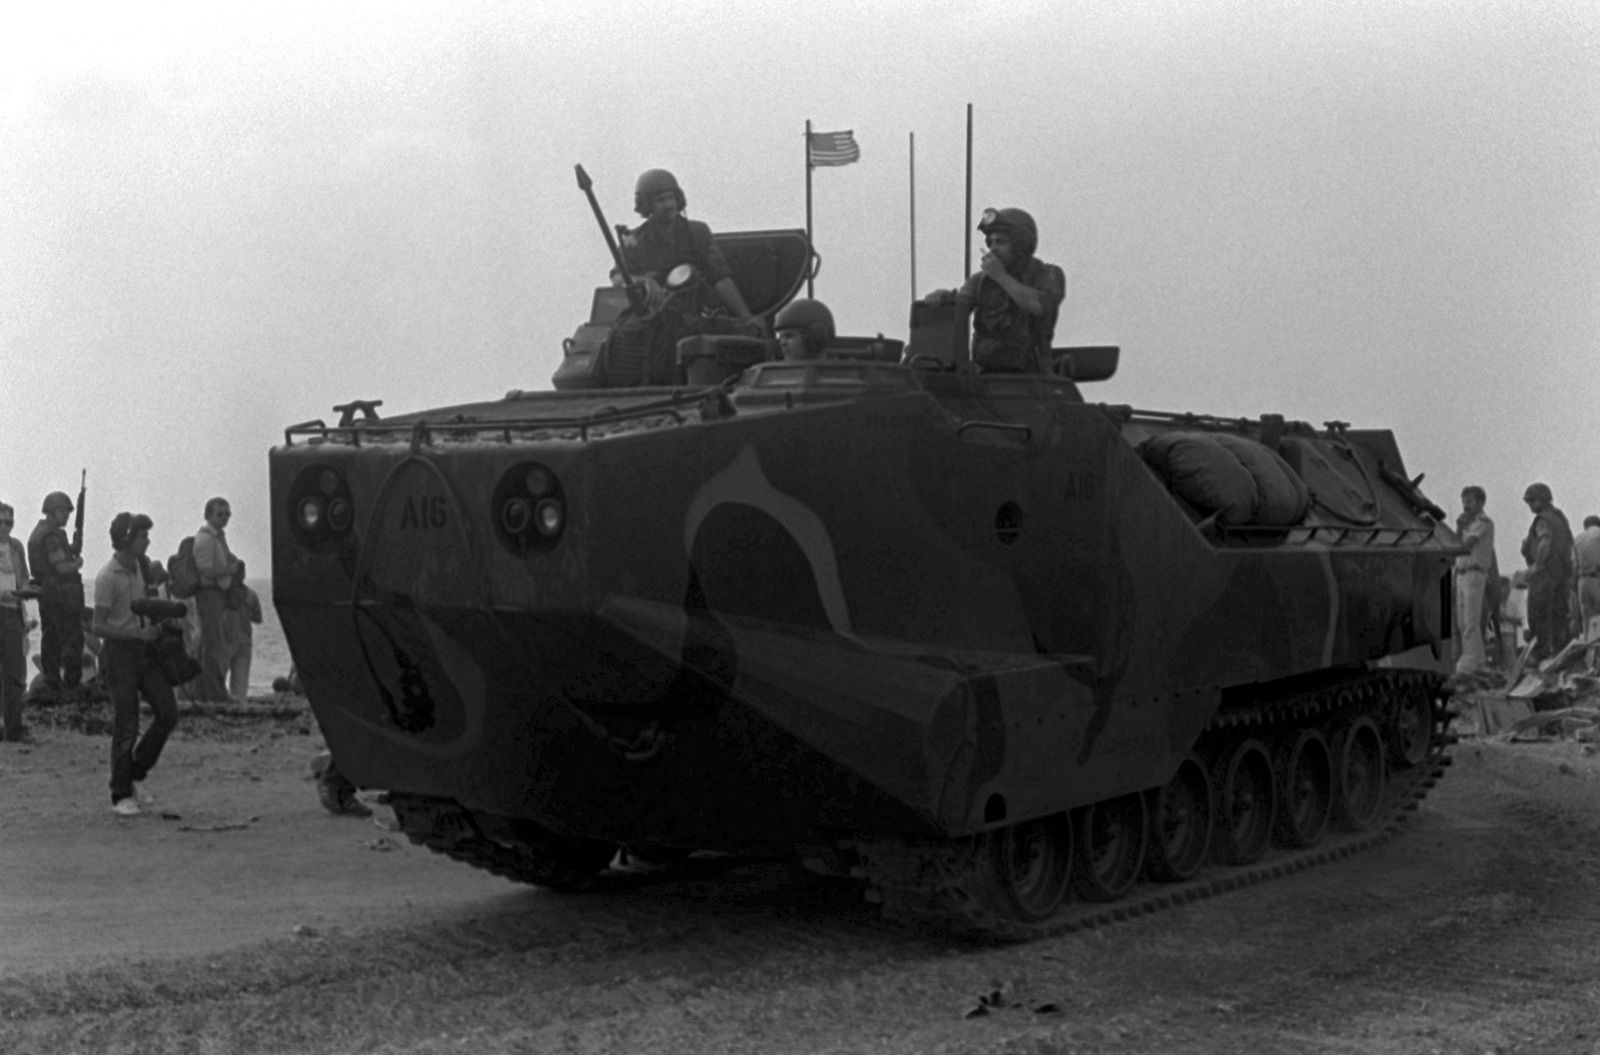 Download Image Of U S Marines Come Ashore In A Lvtp 7 Tracked Landing Vehicle U S Marines Have Been Assi Marines Palestine Liberation Organization Vehicles